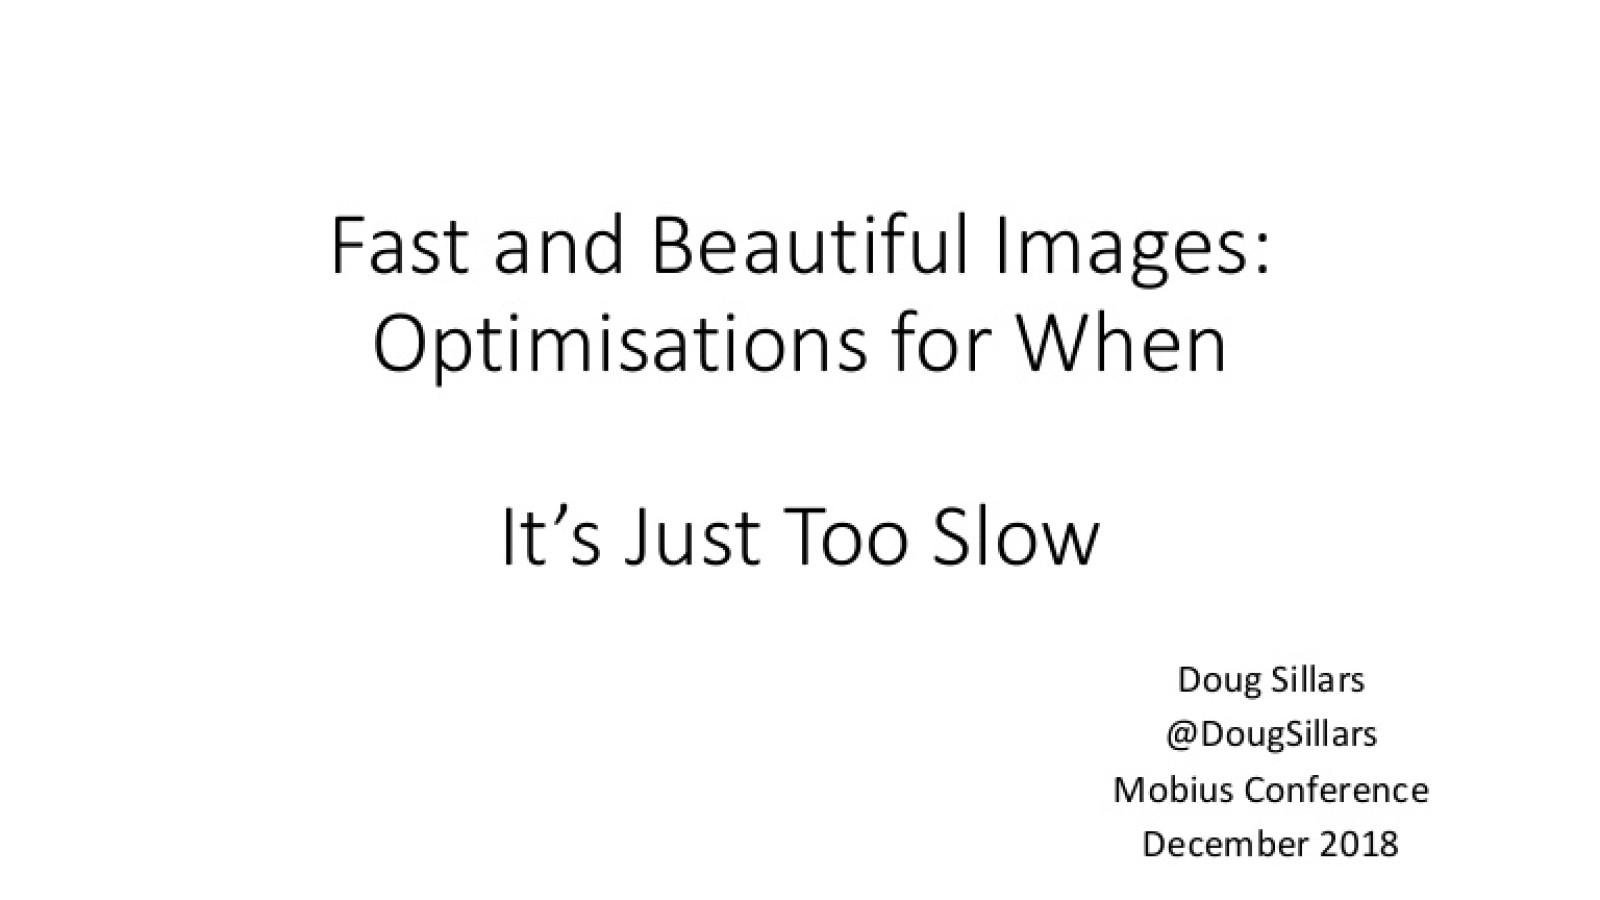 Optimizations for Images for When Its Just Too Slow